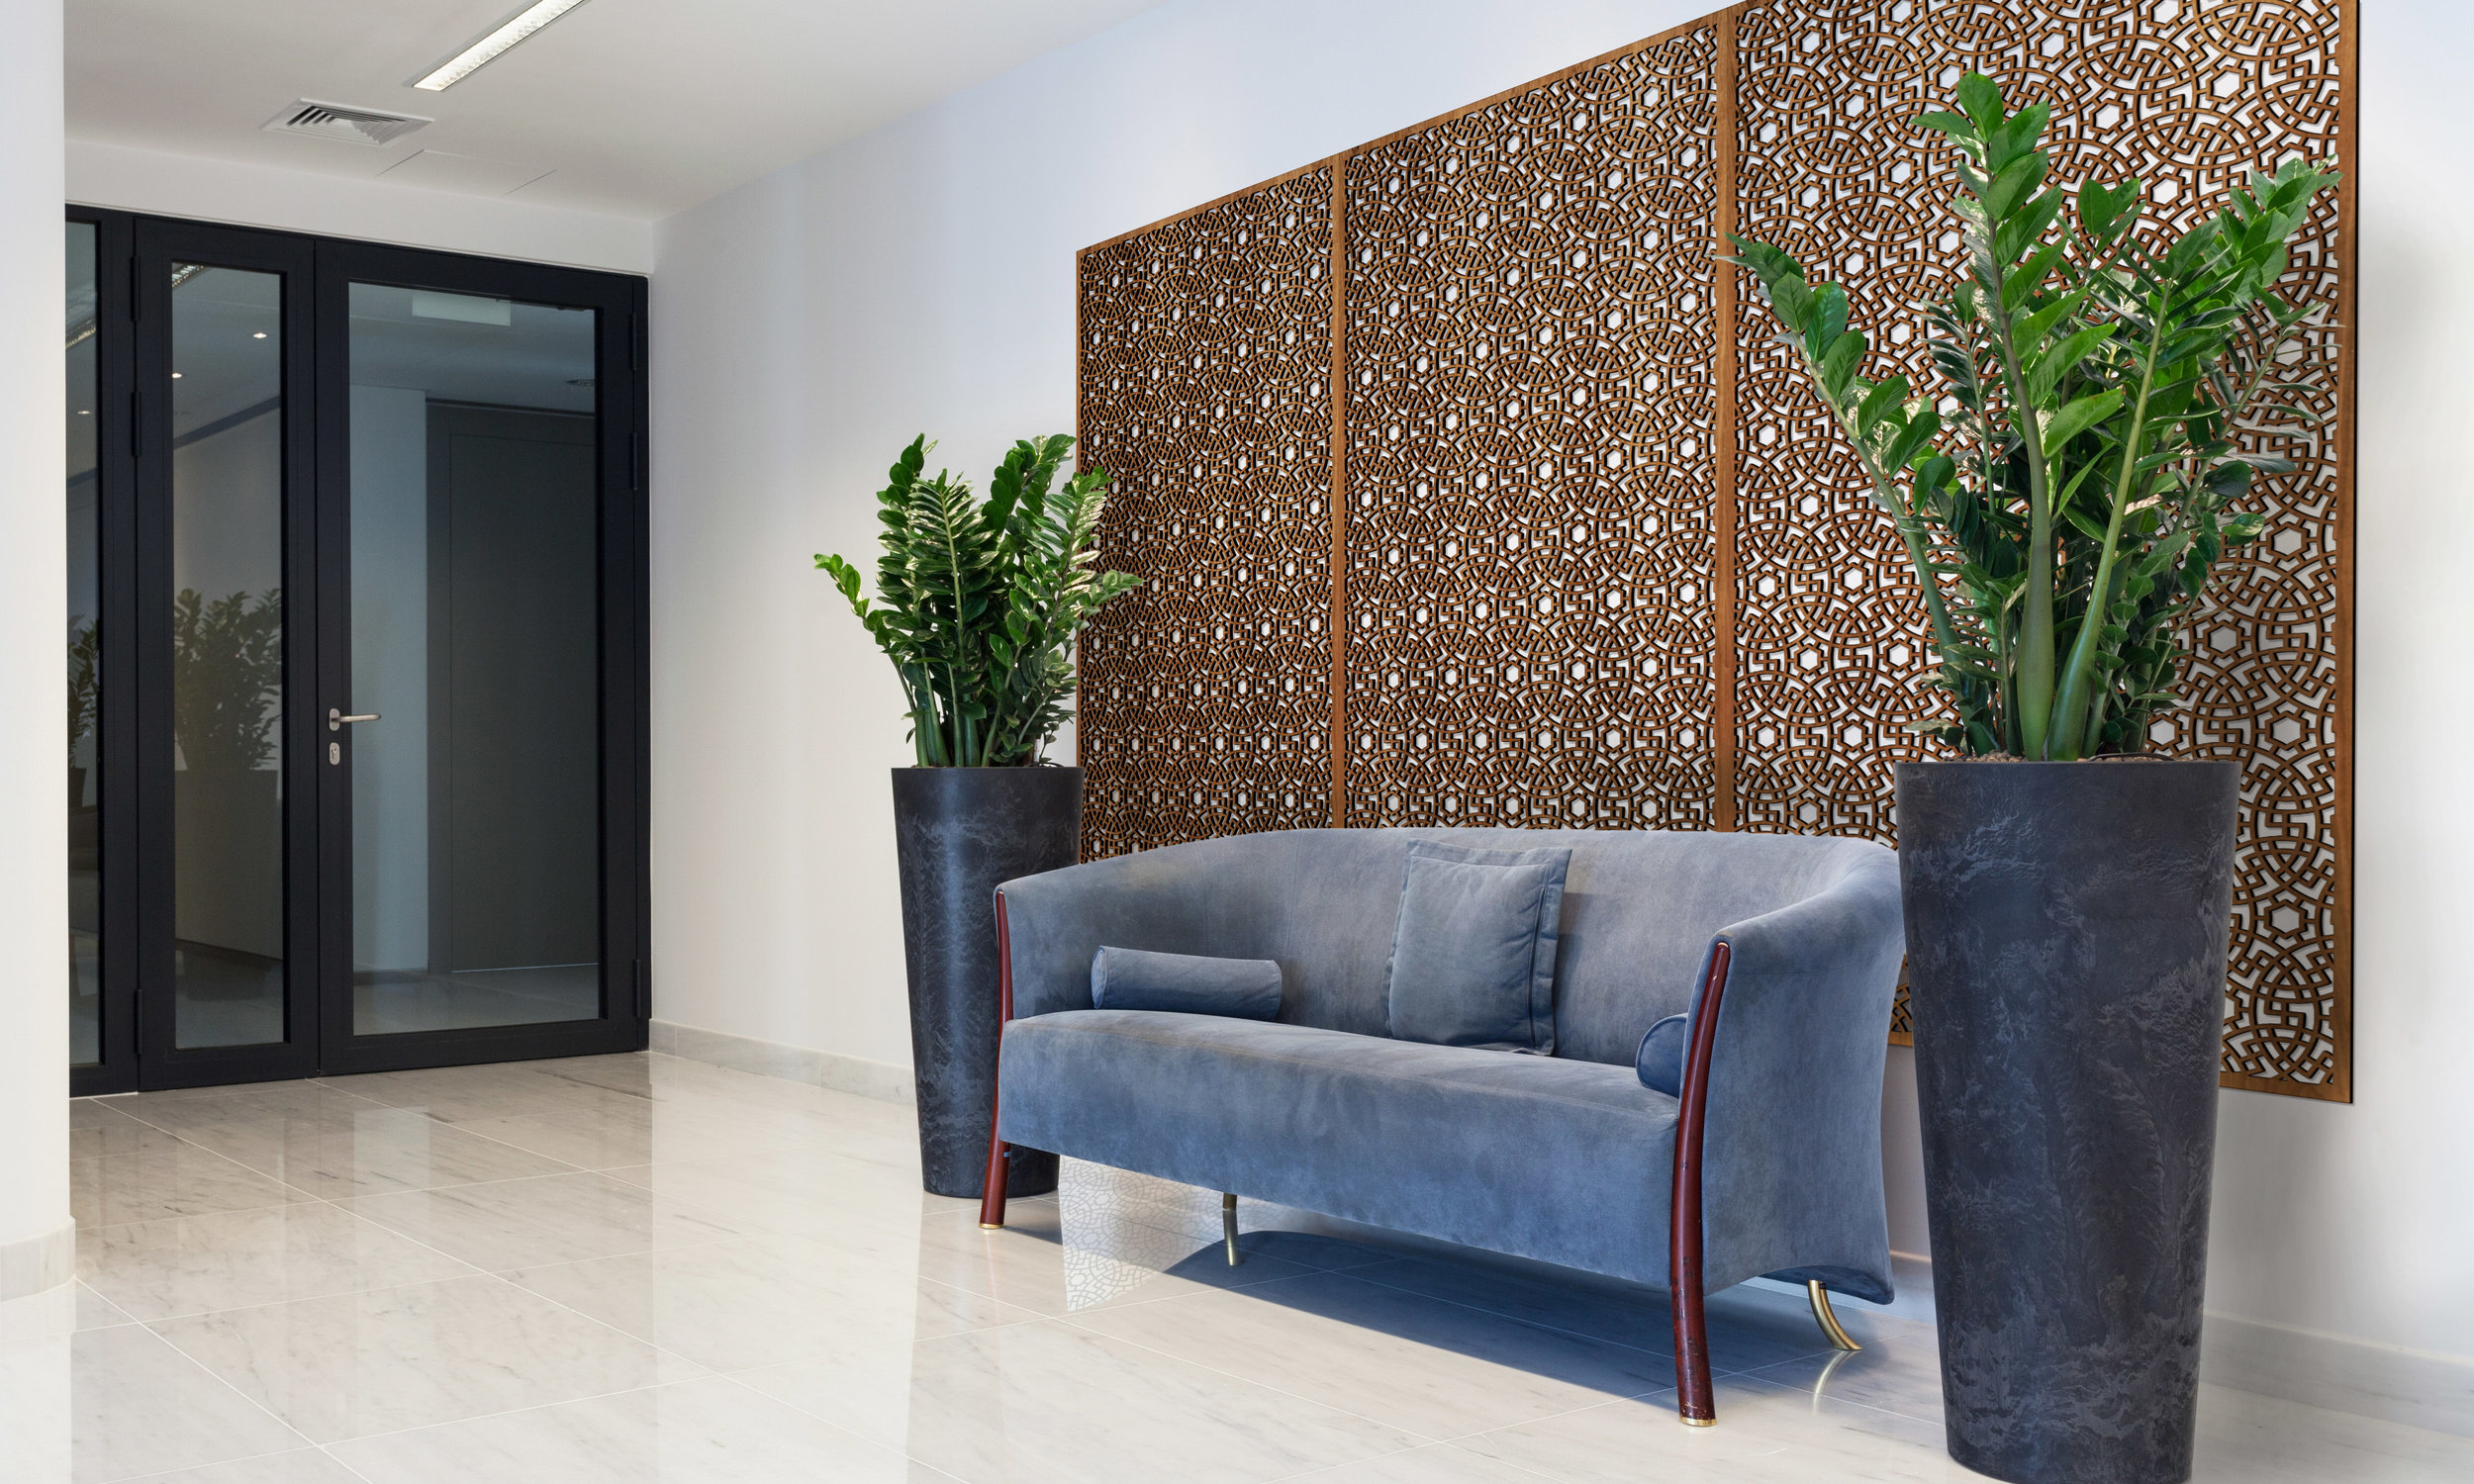 Installation Rendering A   Persian Circles decorative office wall panel - shown in Cherry